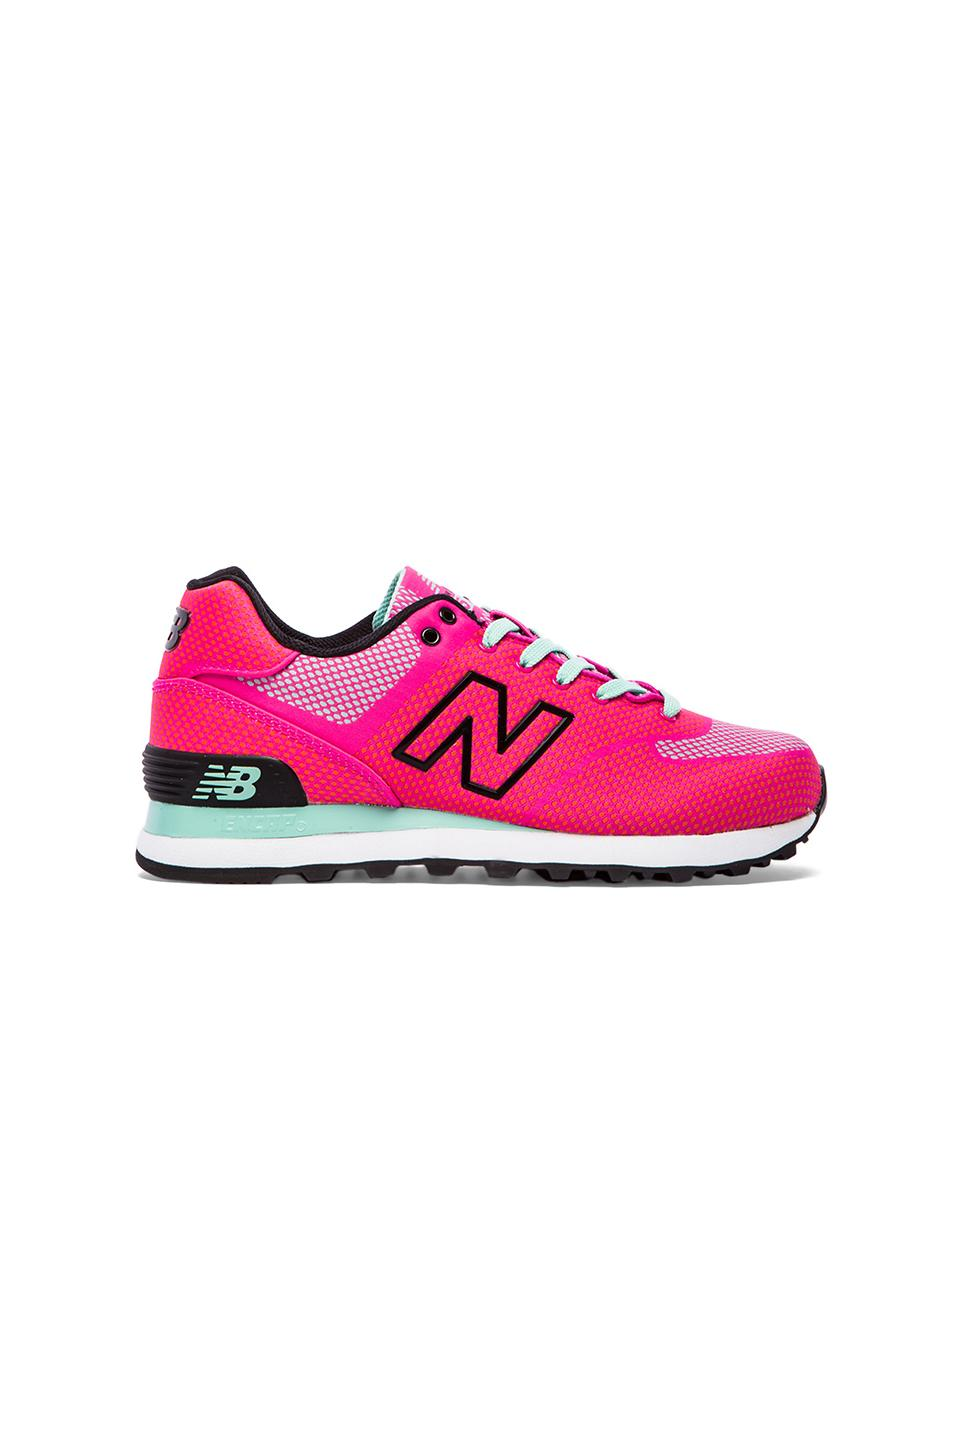 New Balance Woven Sneaker in Pink Glo & Aquamarine